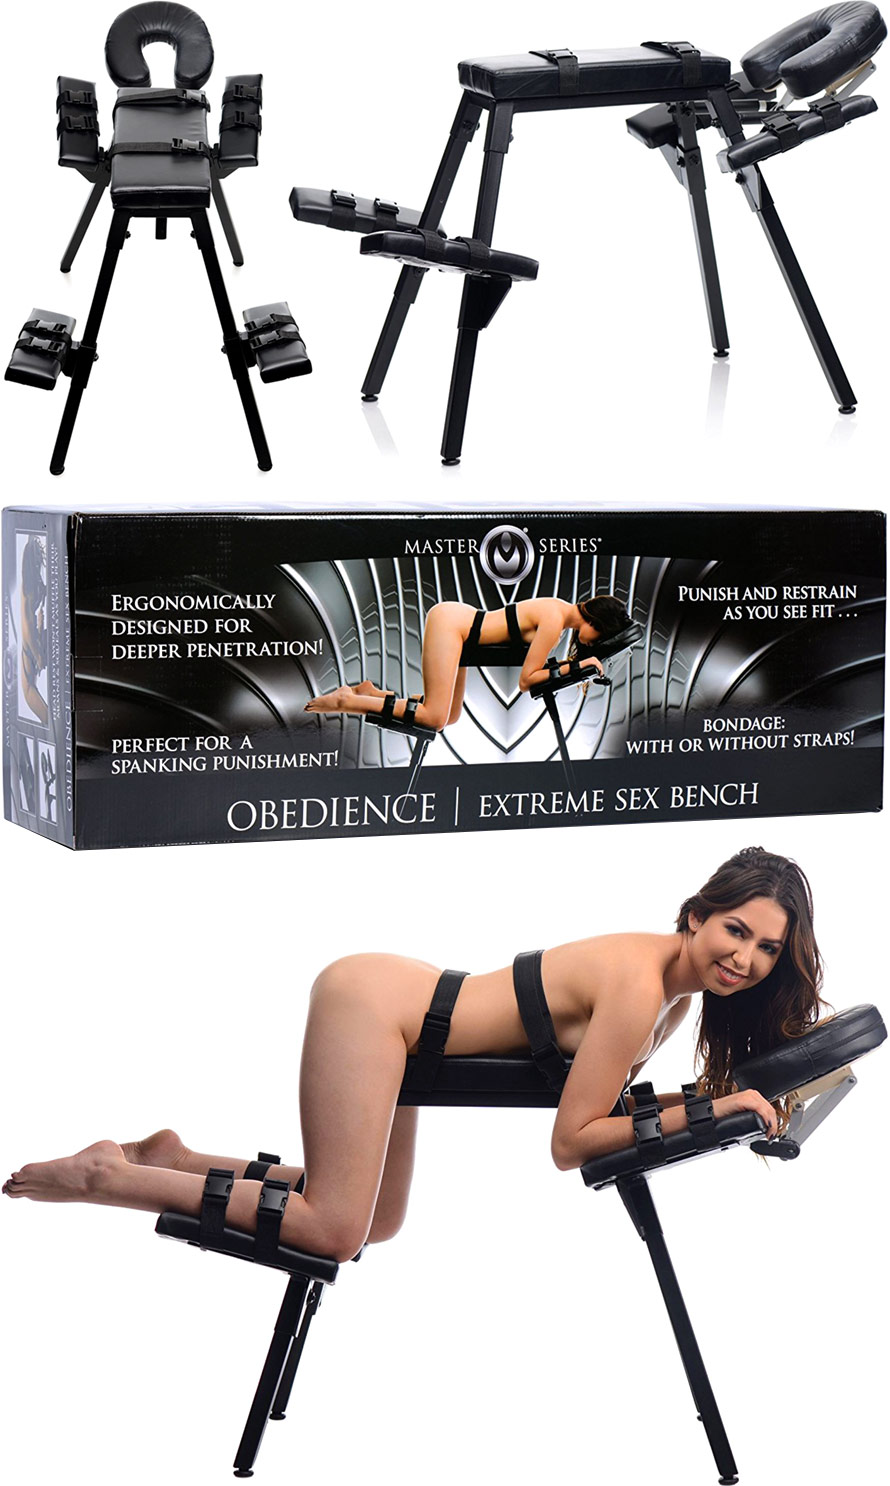 Master Series Obedience Extreme Sex Bench With Restraint Straps Bondage